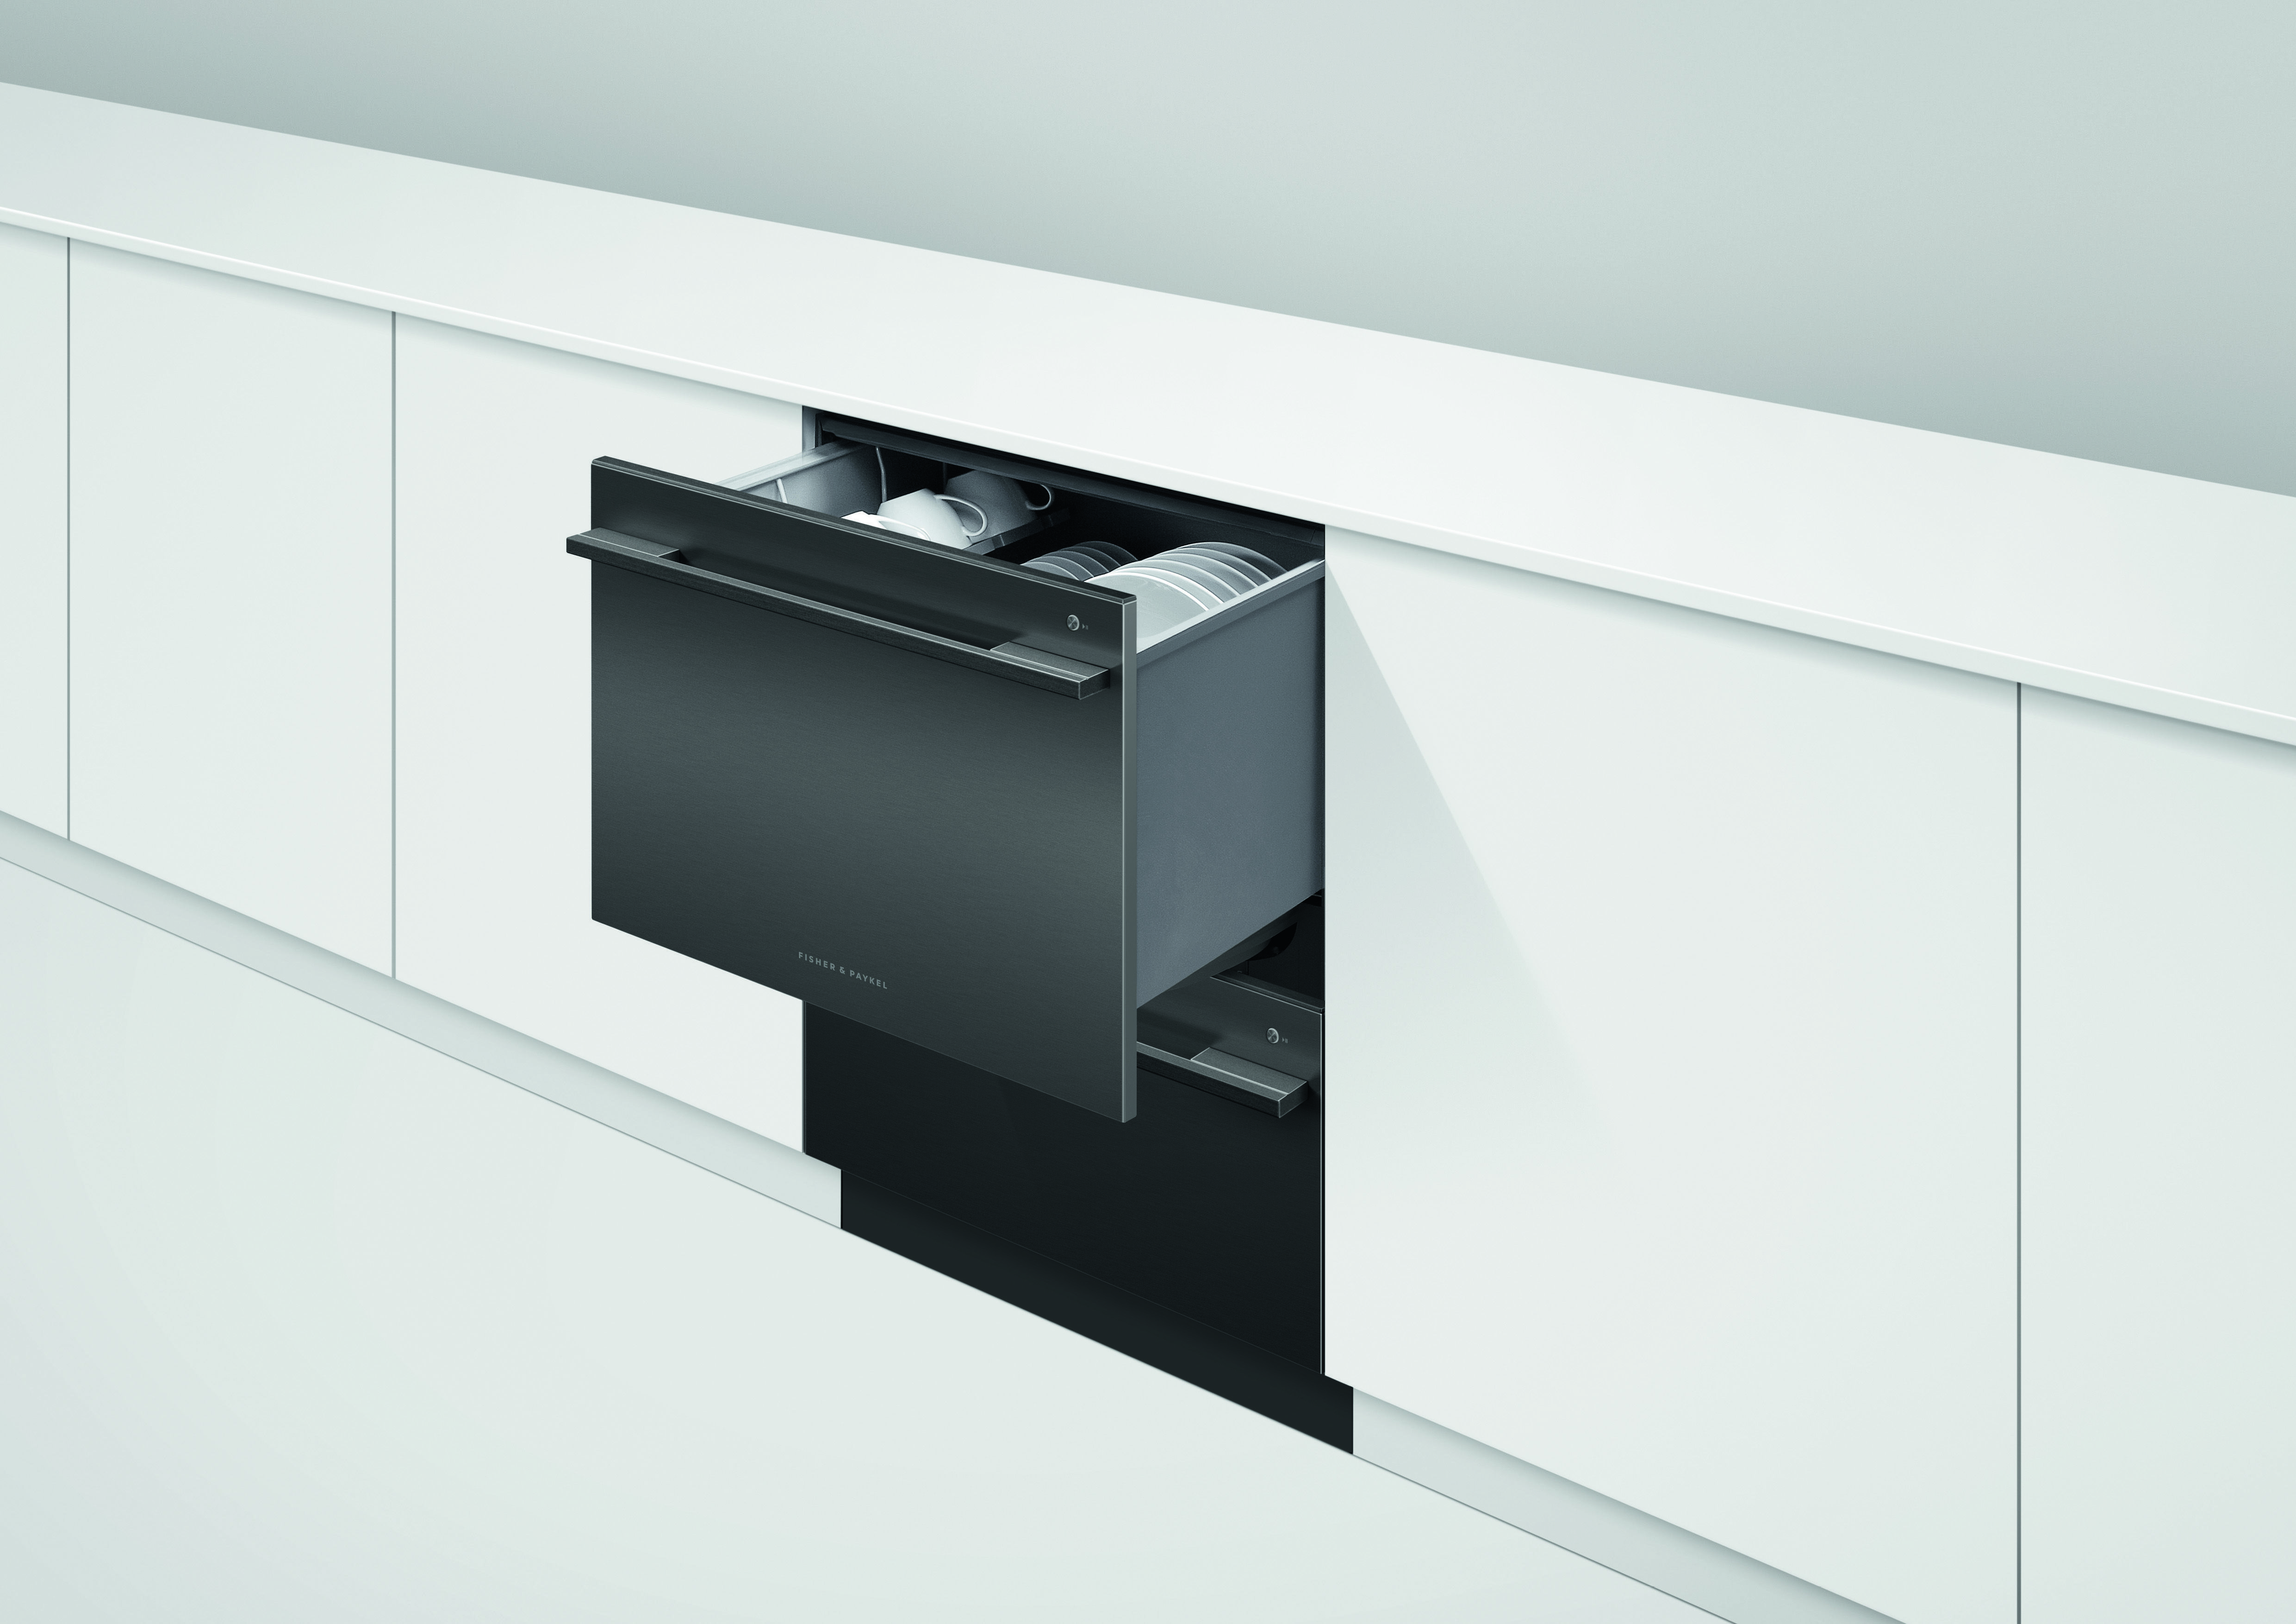 Check out this popular double drawer dishwasher from